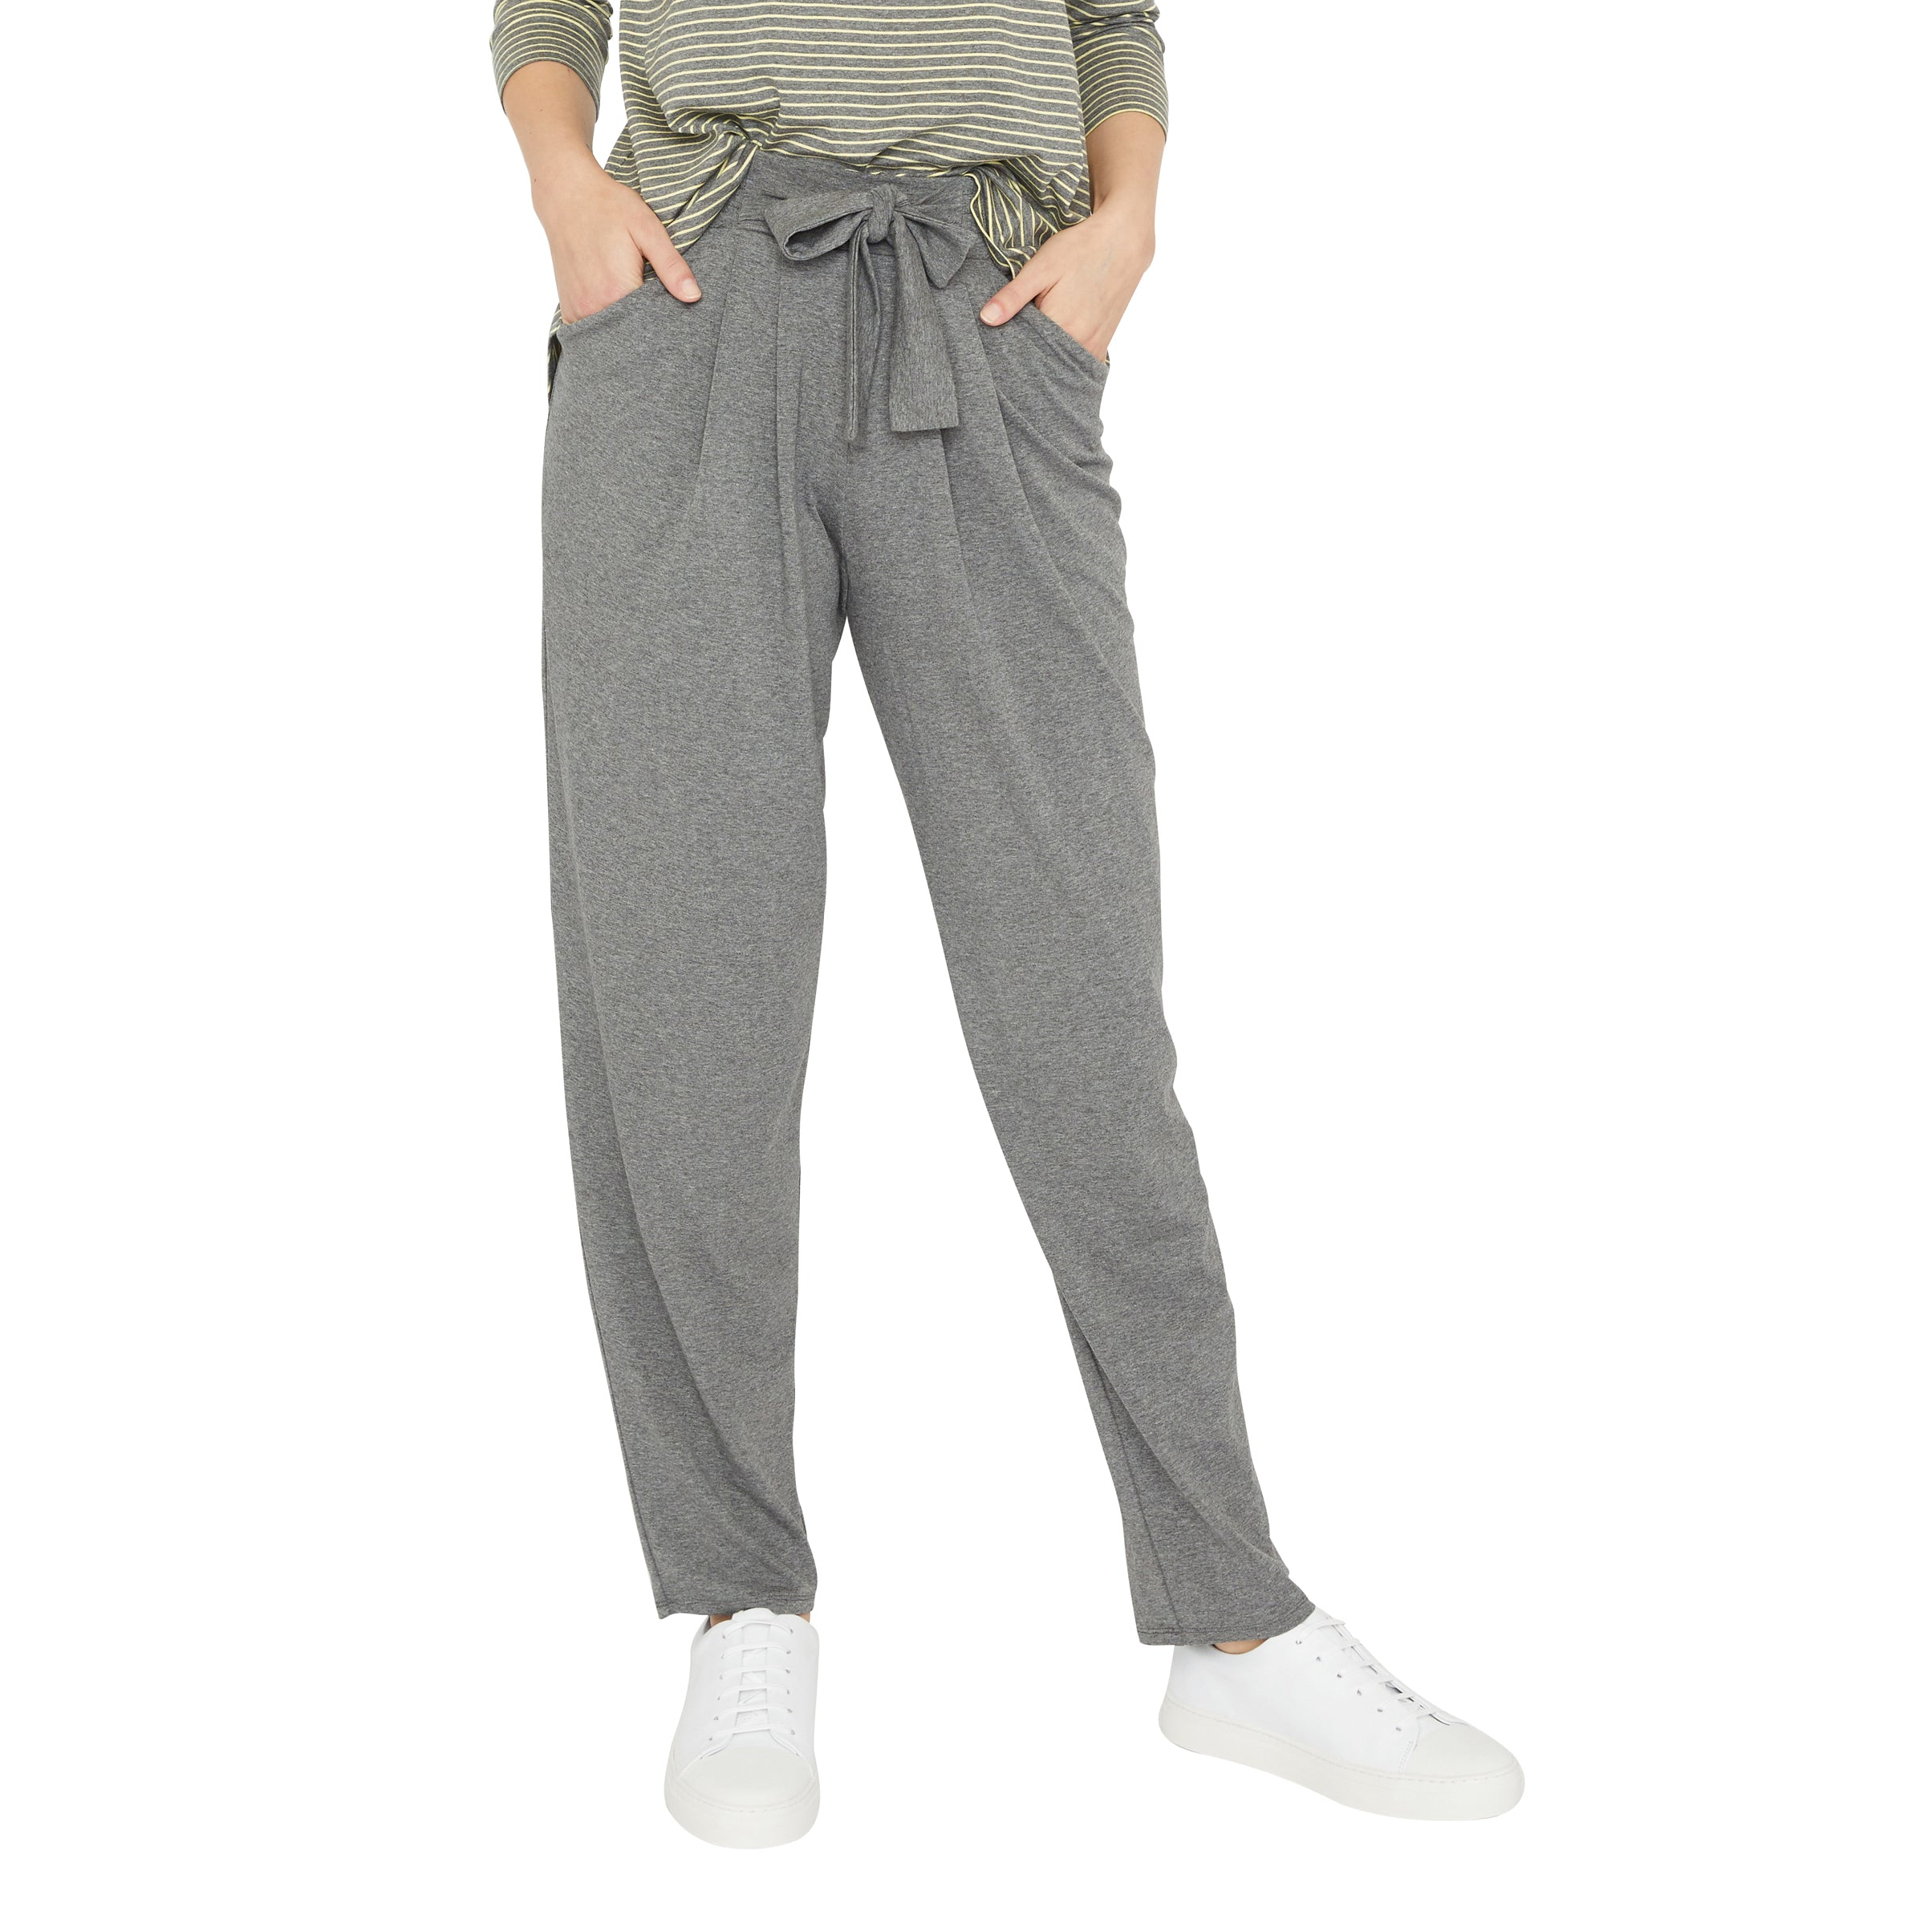 Savannah Pants - Sale